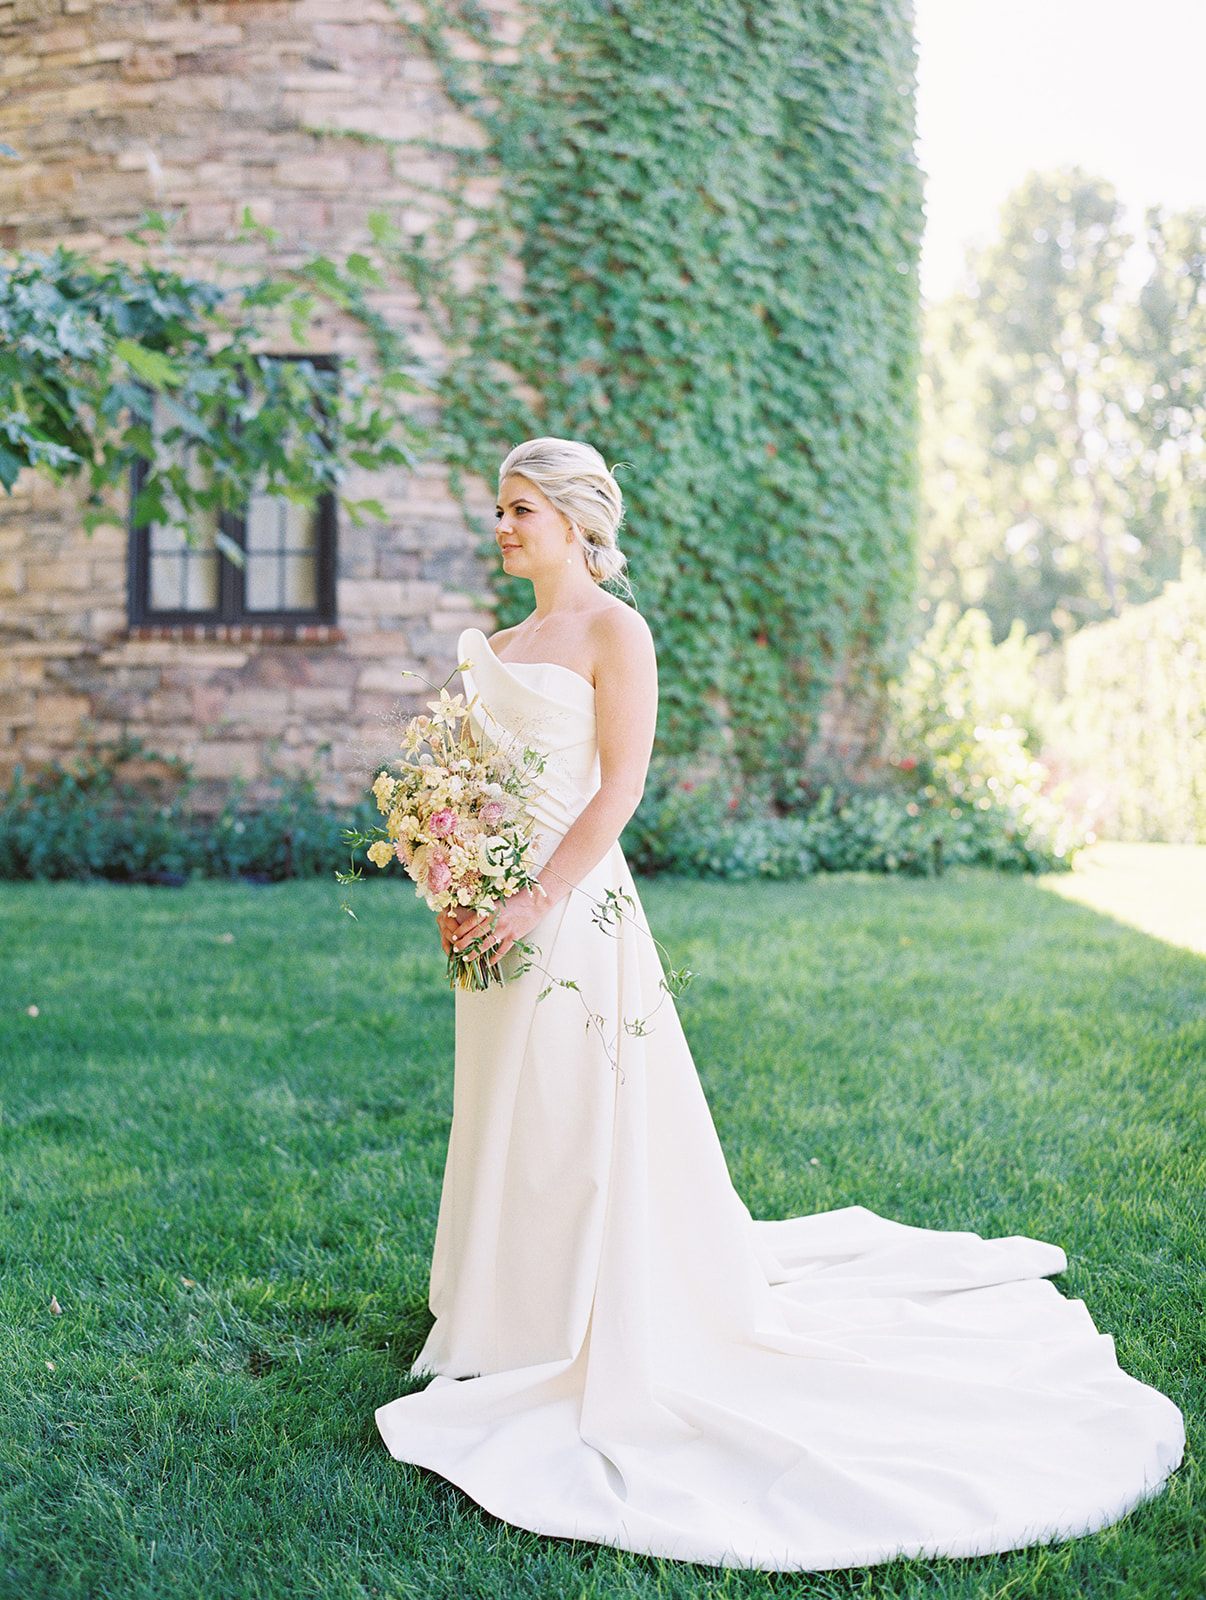 bride wearing an off-white architectural dress